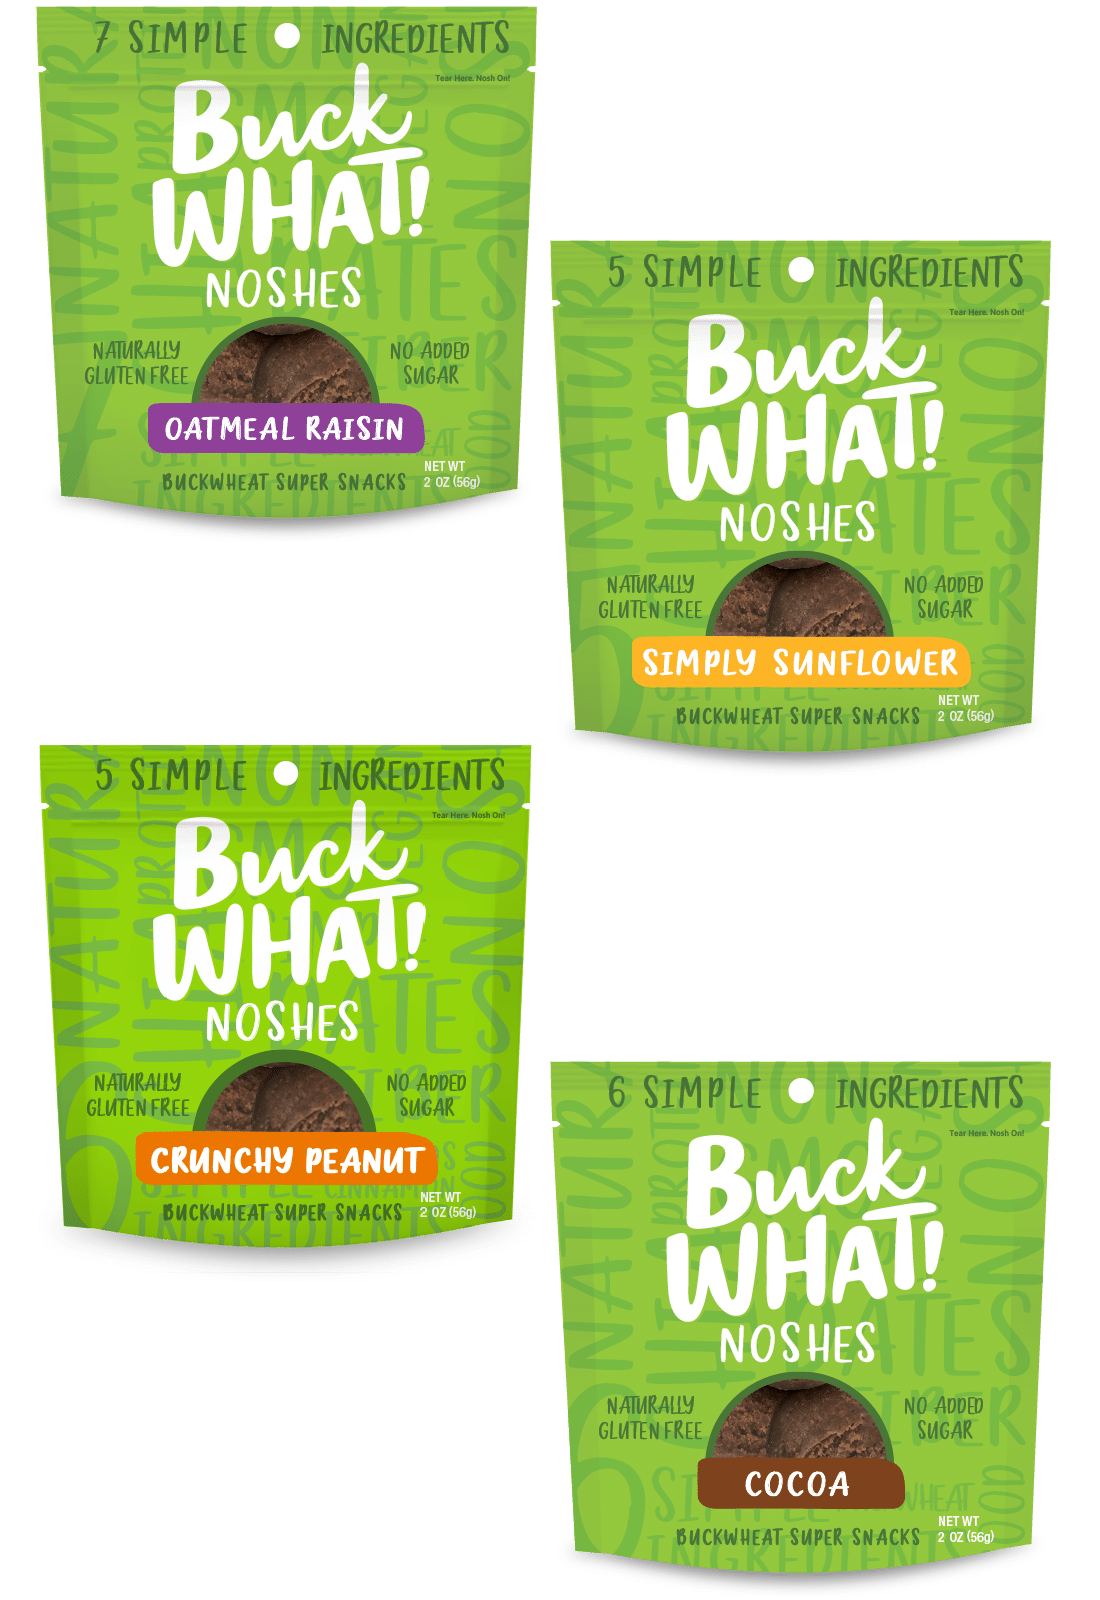 BuckWHAT Debuts New Packaging and 3 Nut-Free Flavors of Noshes